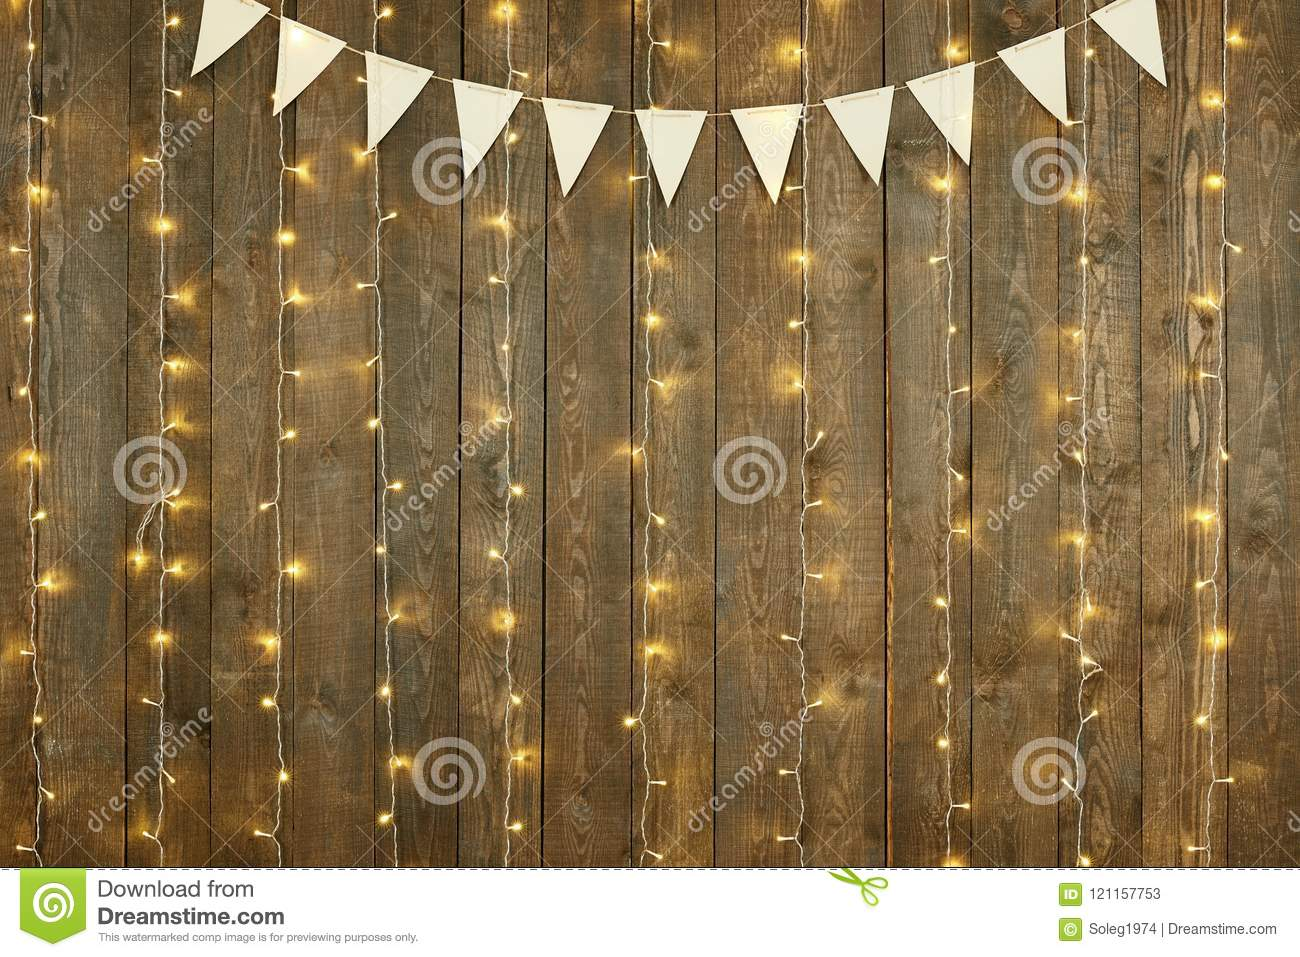 Dark wood background with lights and flags, abstract holiday backdrop, copy space for text